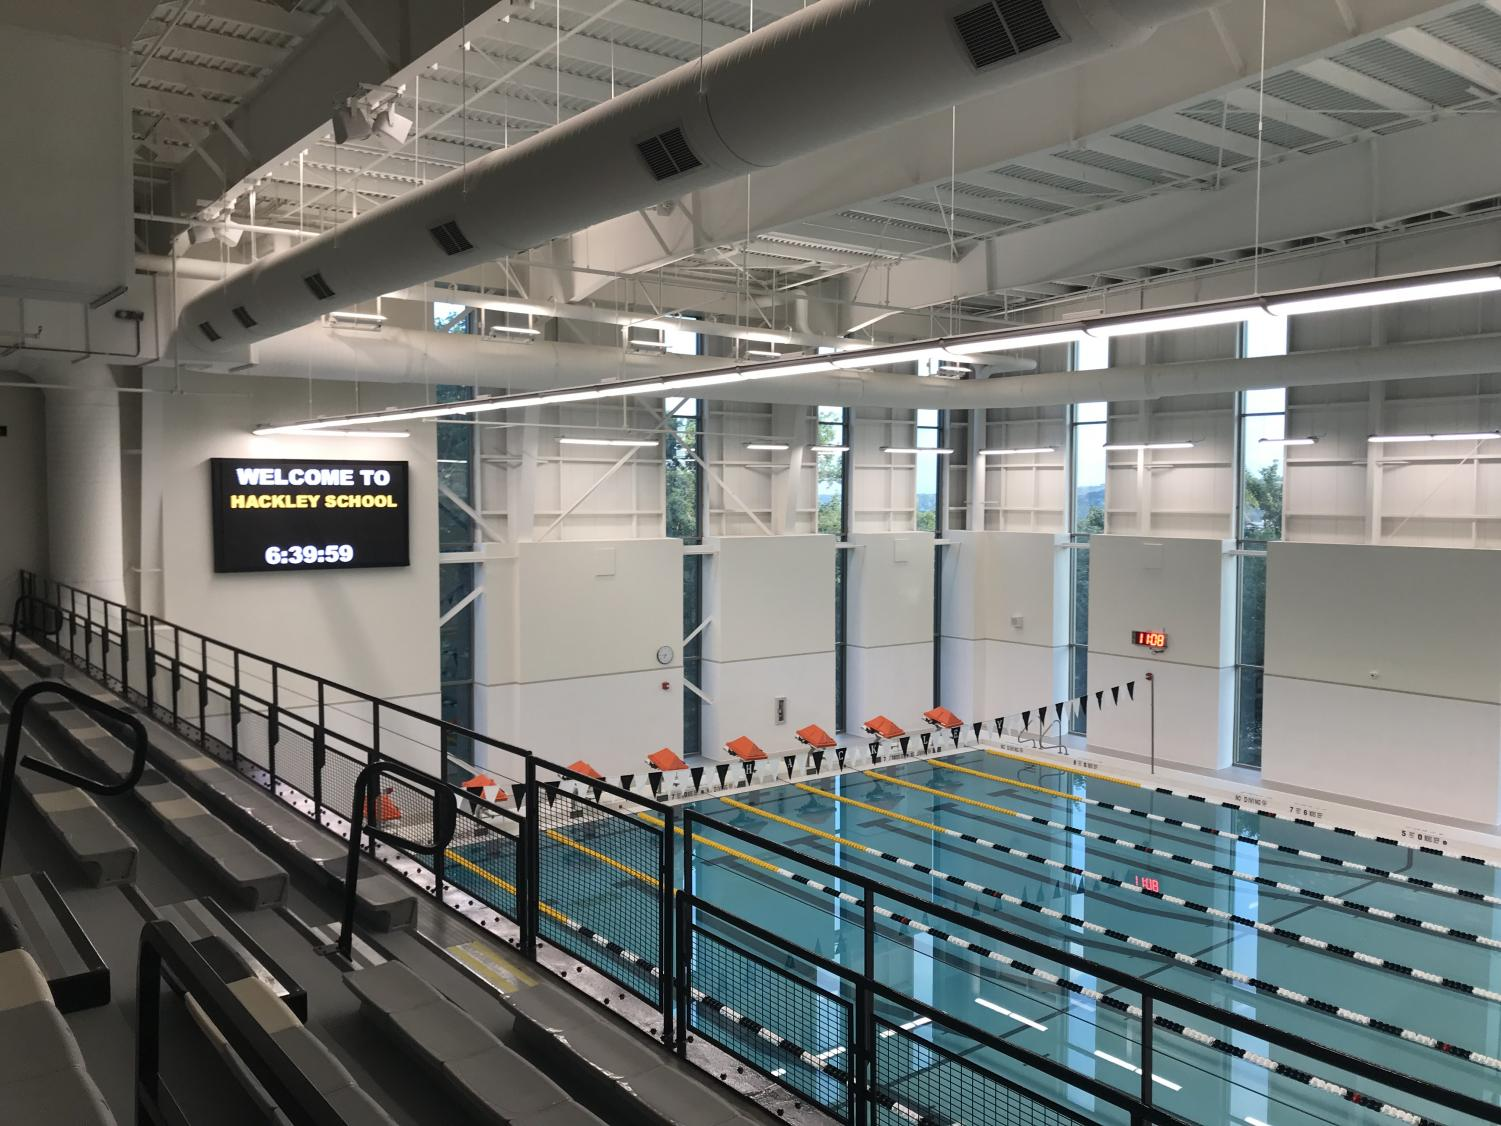 Despite the fact that the Johnson Center for Health and Wellness was completed last January, the pool for the new facility remained under construction this past year.